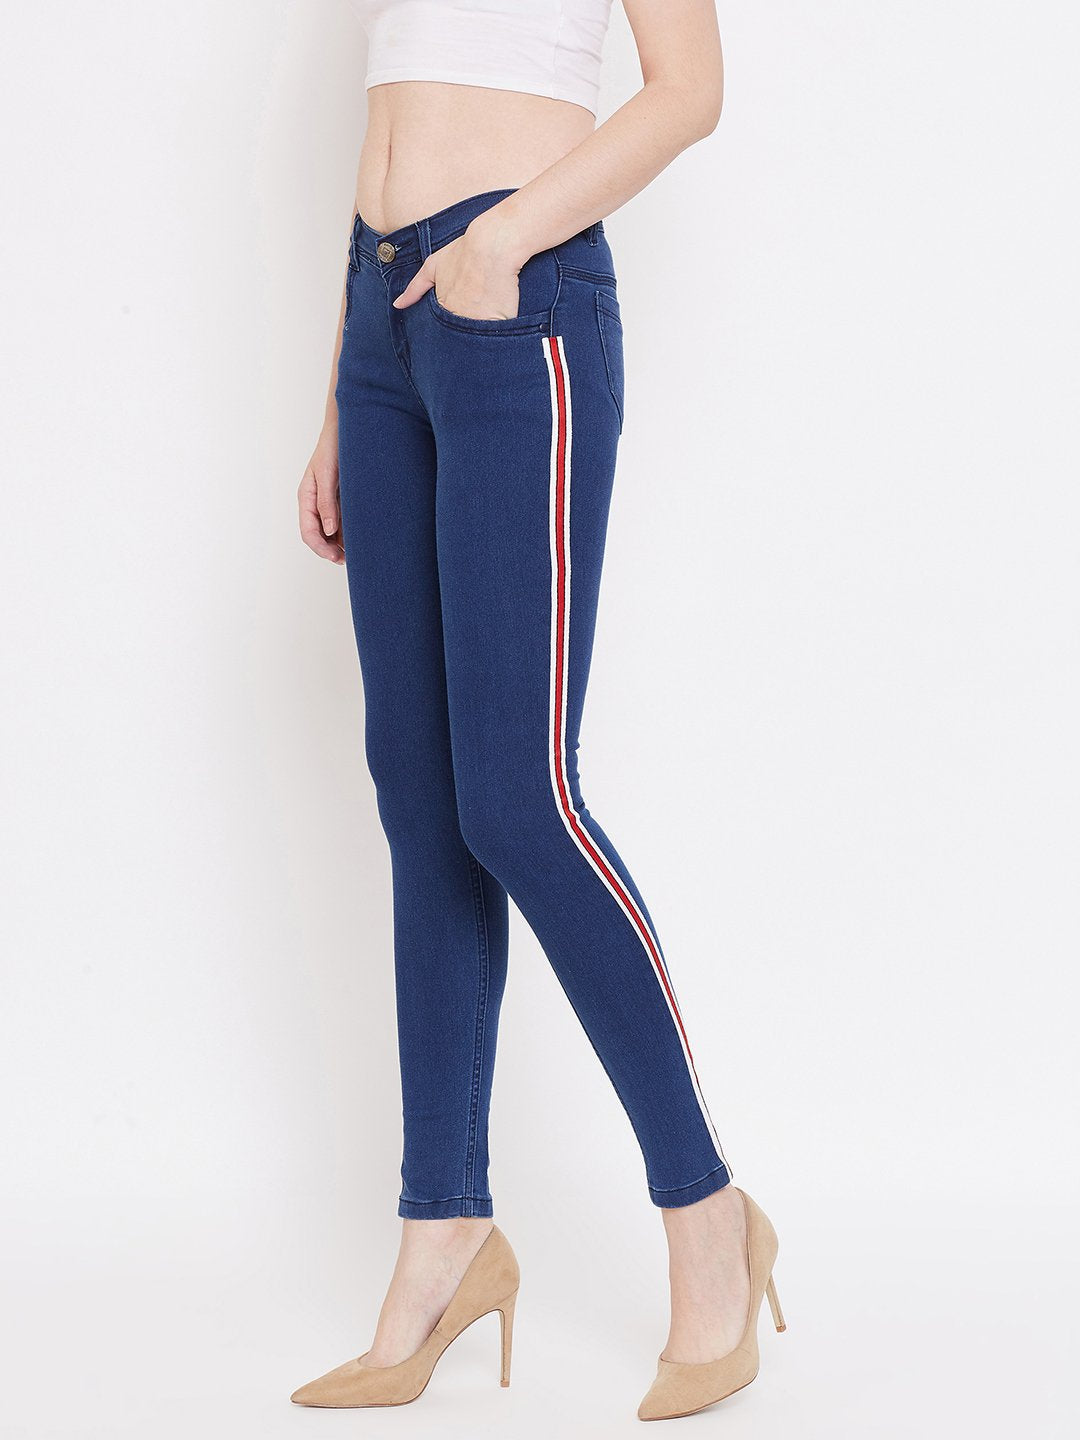 Slim Fit Side Stripe Bata Blue Jeans - NiftyJeans